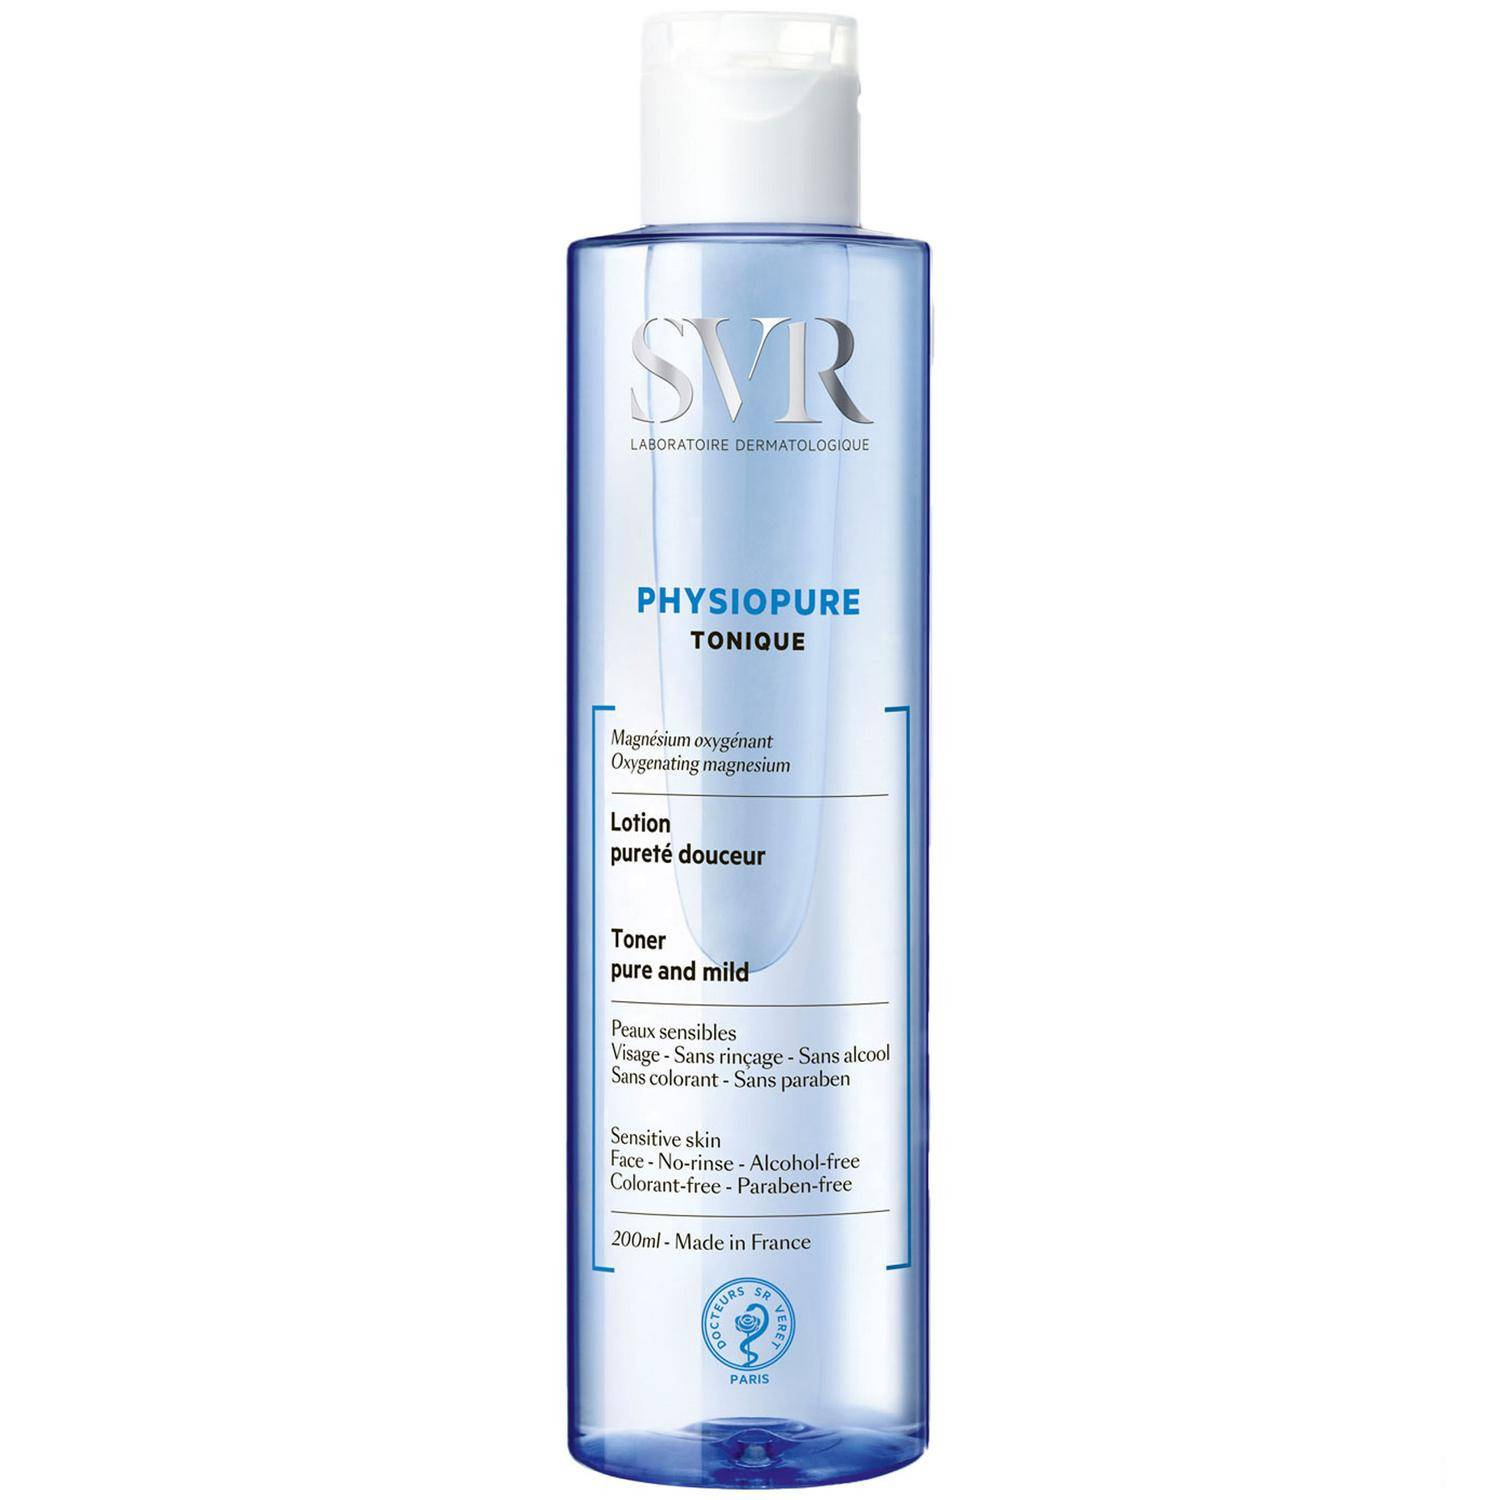 SVR Physiopure Lotion Tonique 200 ml